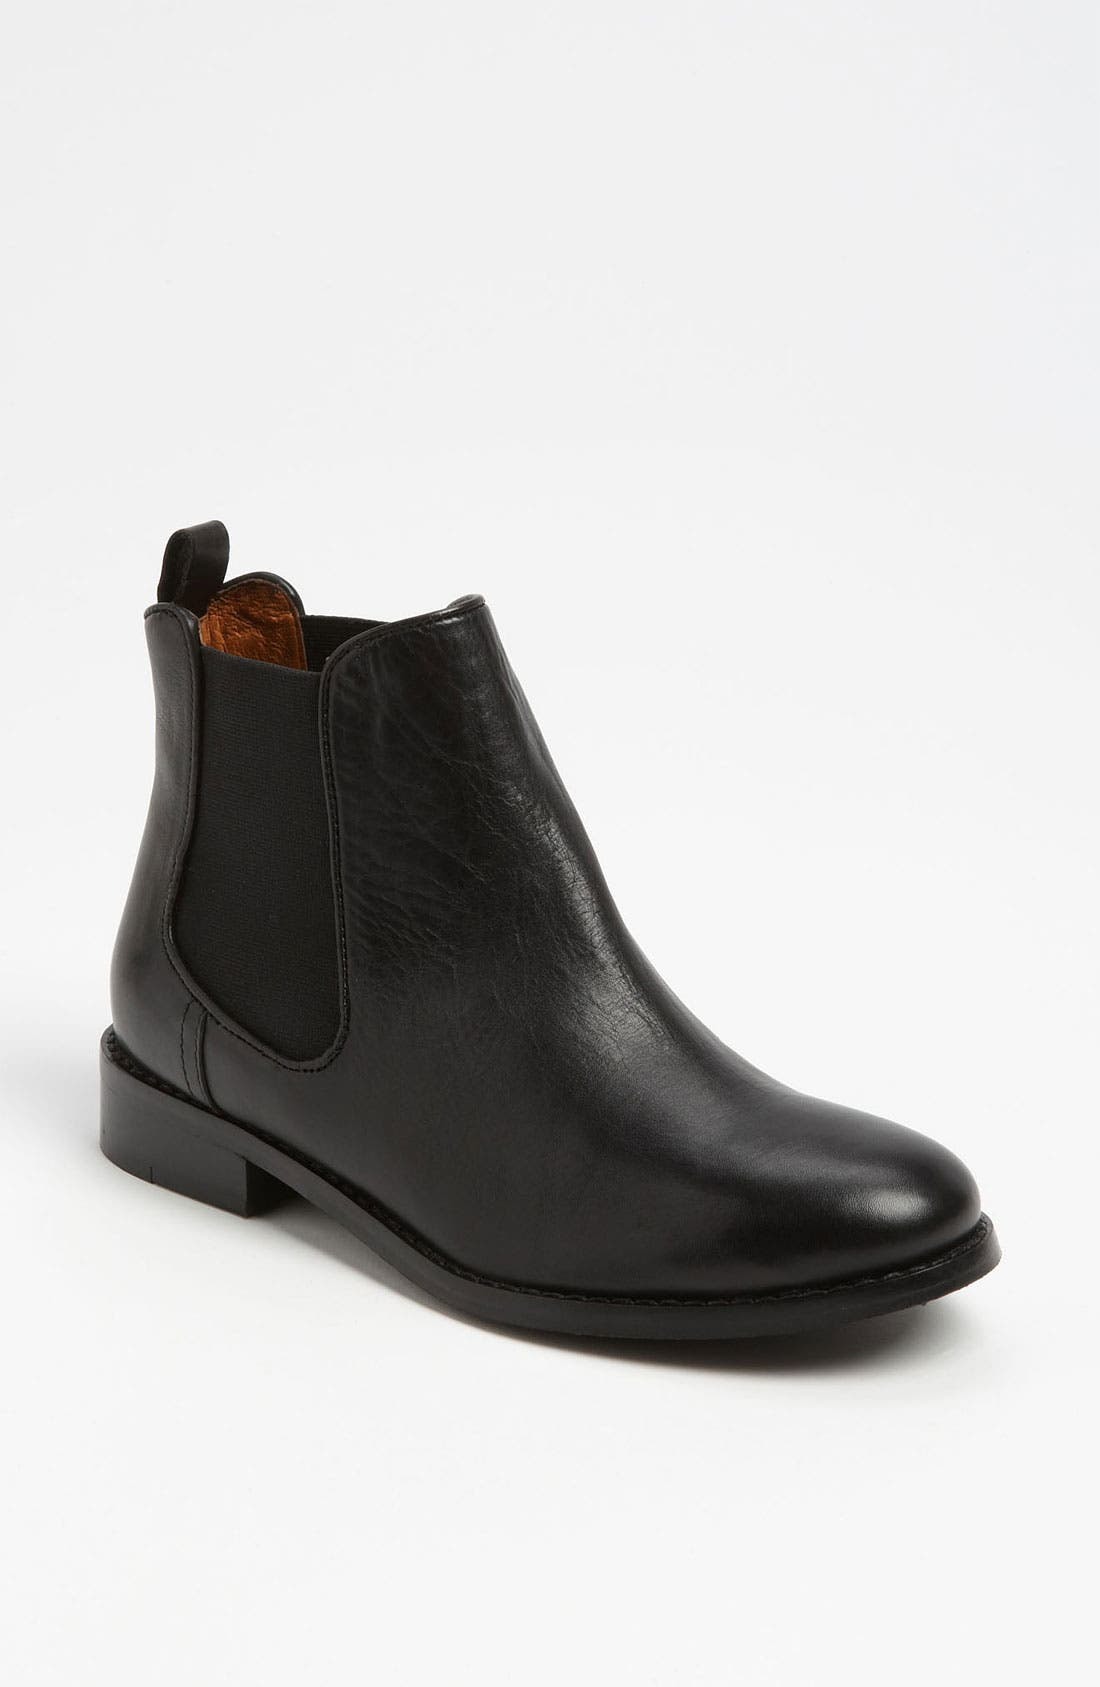 Main Image - Topshop 'April' Chelsea Boot